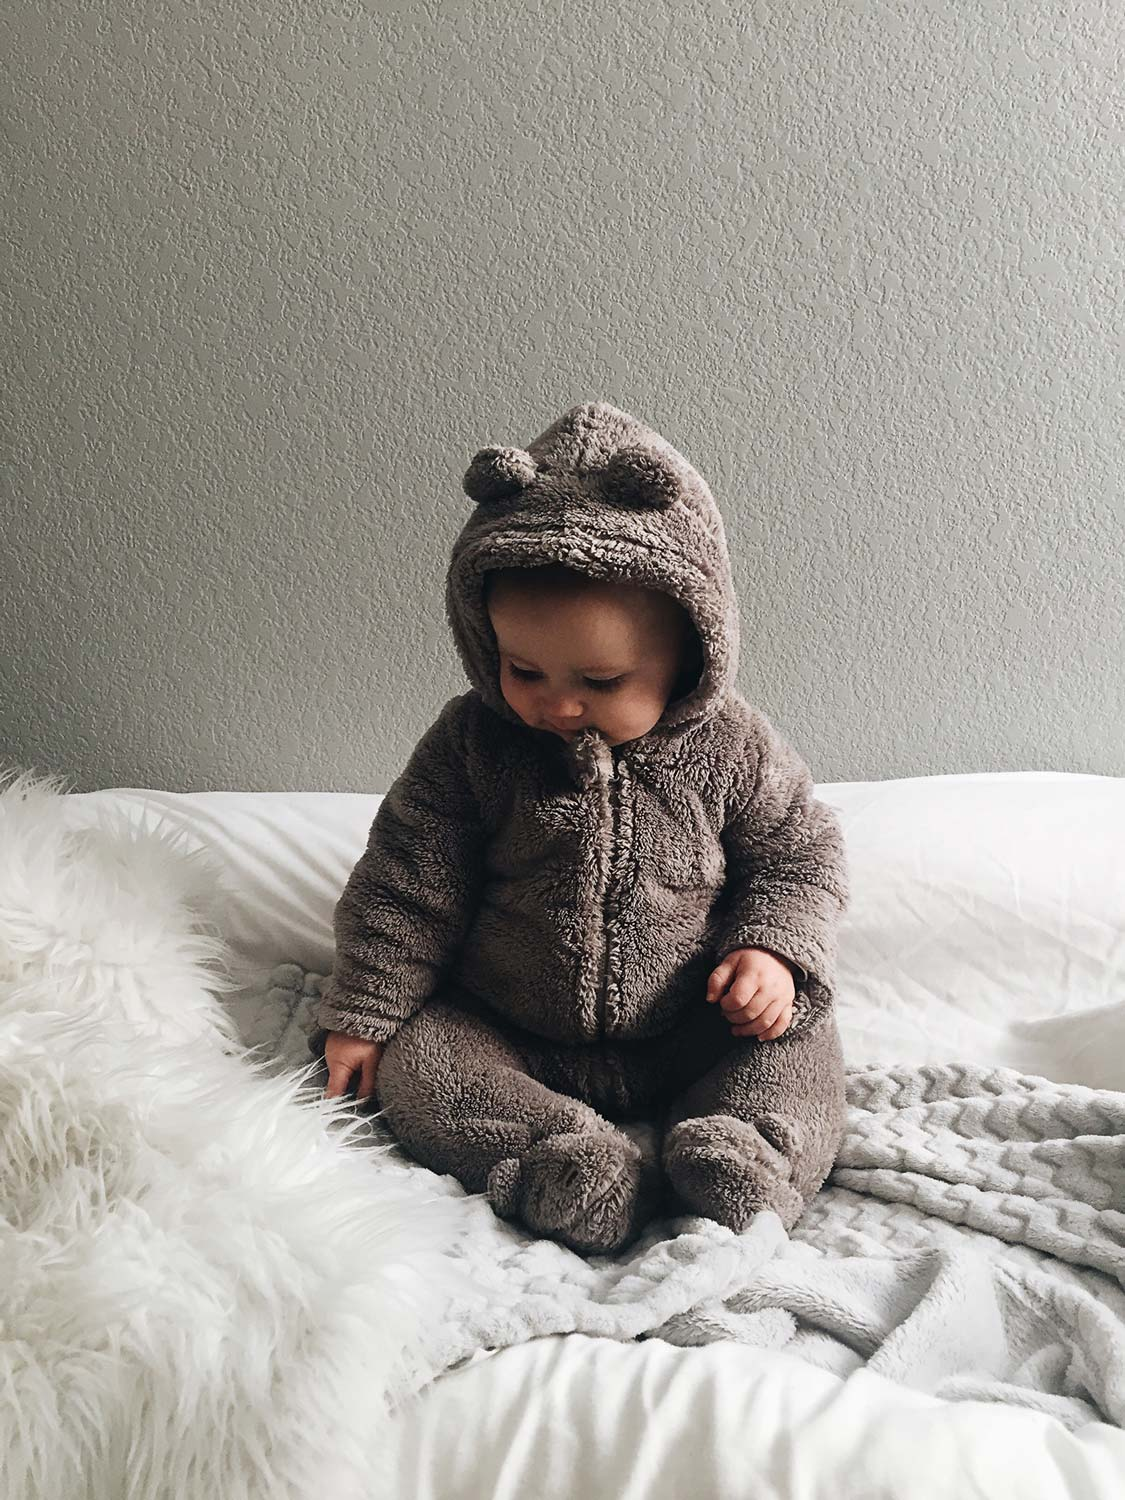 7 Types of Baby Clothes Every New Mom Should Own